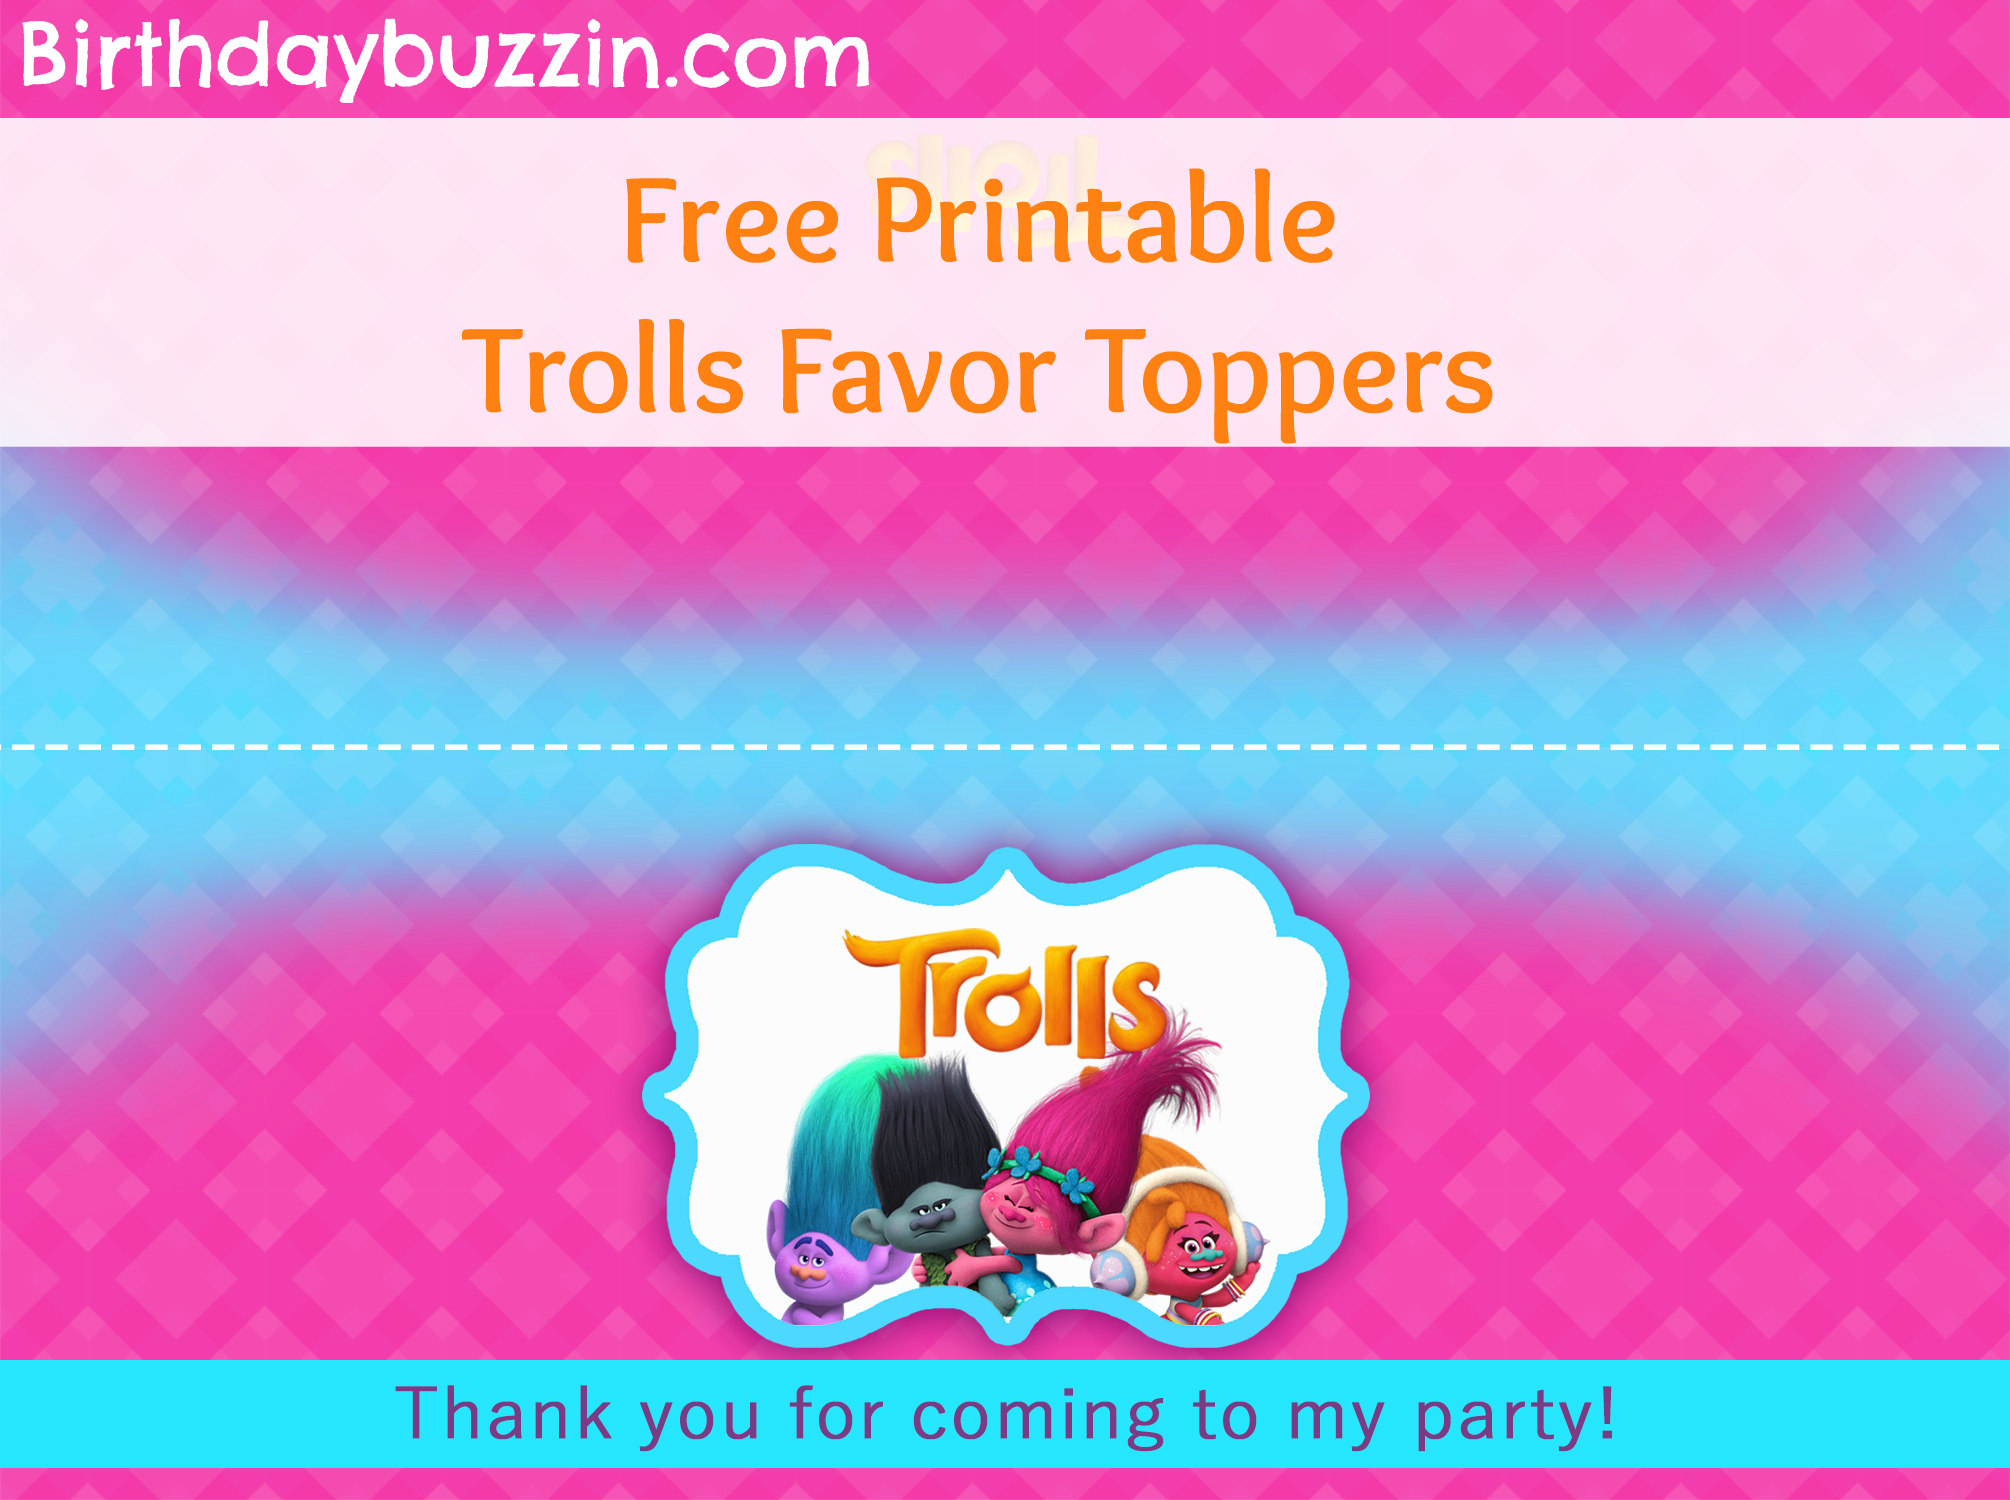 image about Printable Trolls known as Absolutely free Printable Trolls like toppers Birthday Buzzin